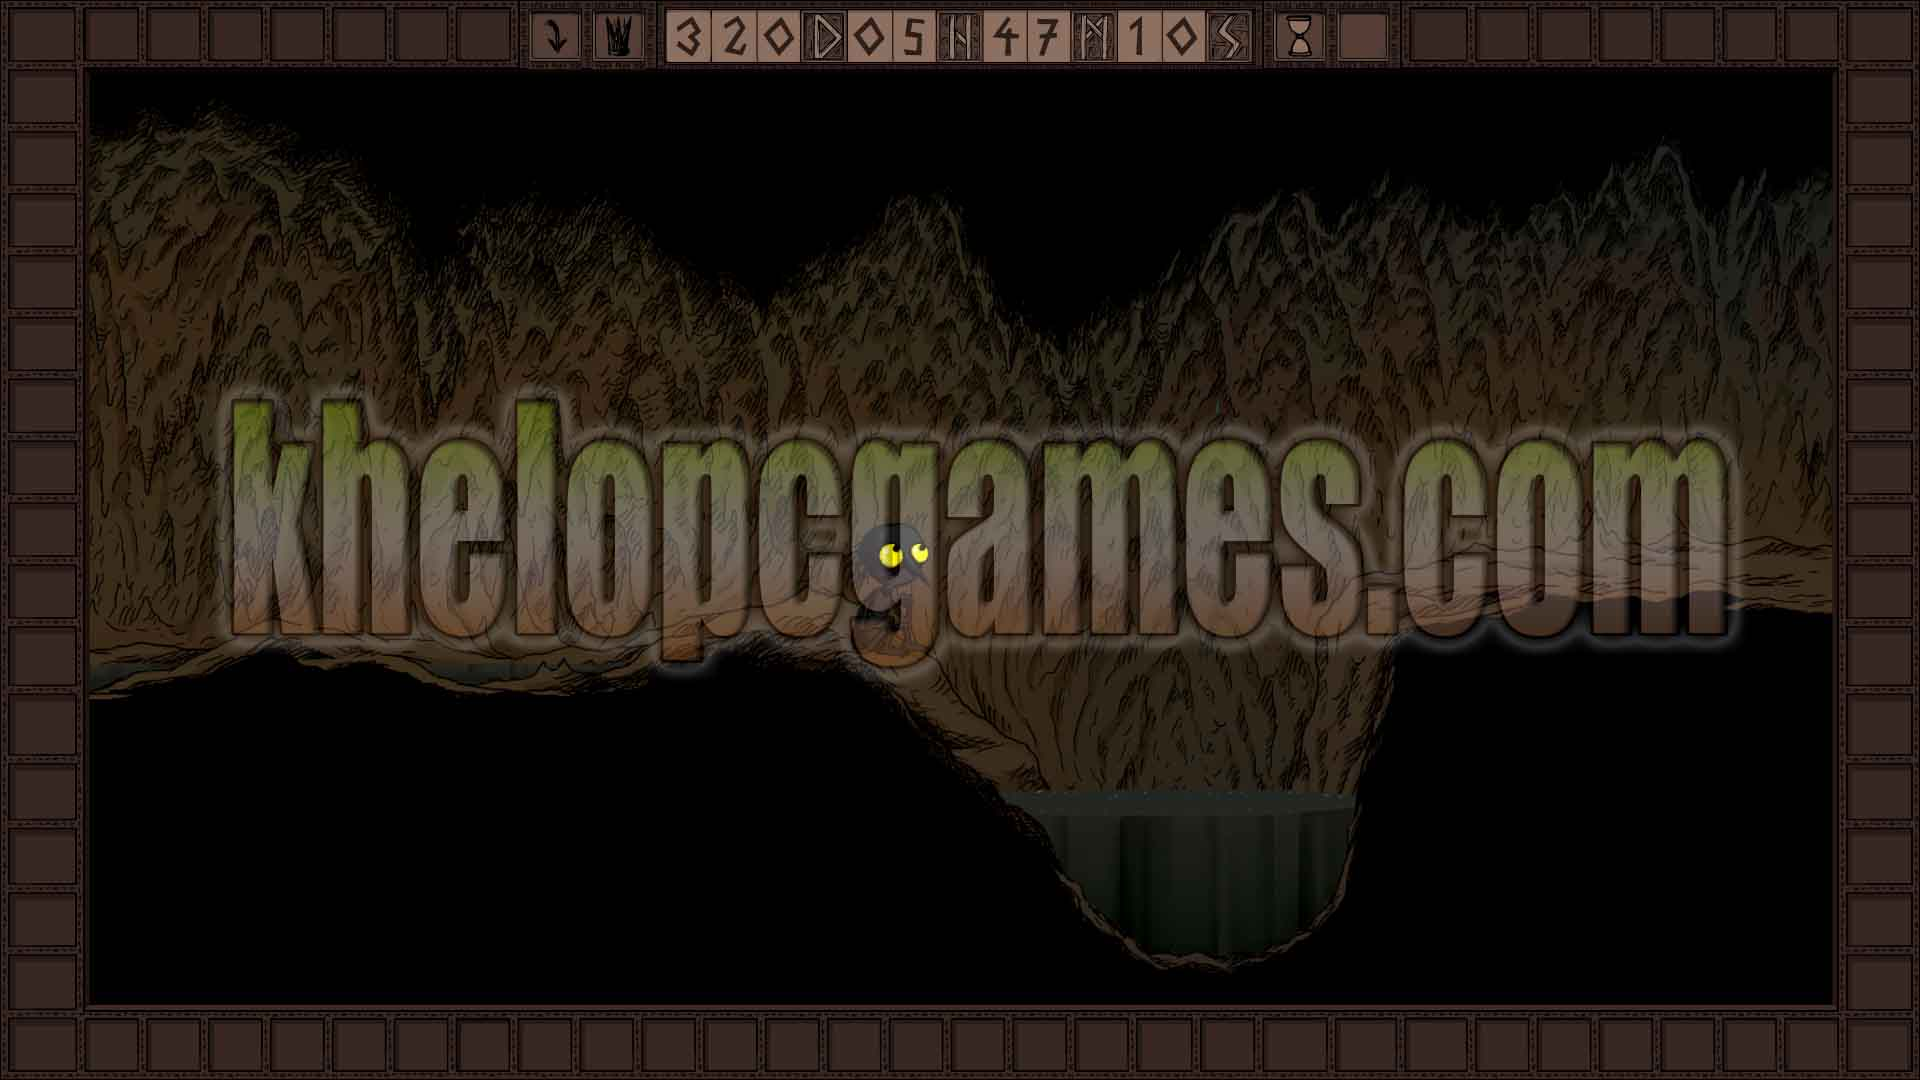 THE LONGING CODEX 2020 Pc Game Free Download